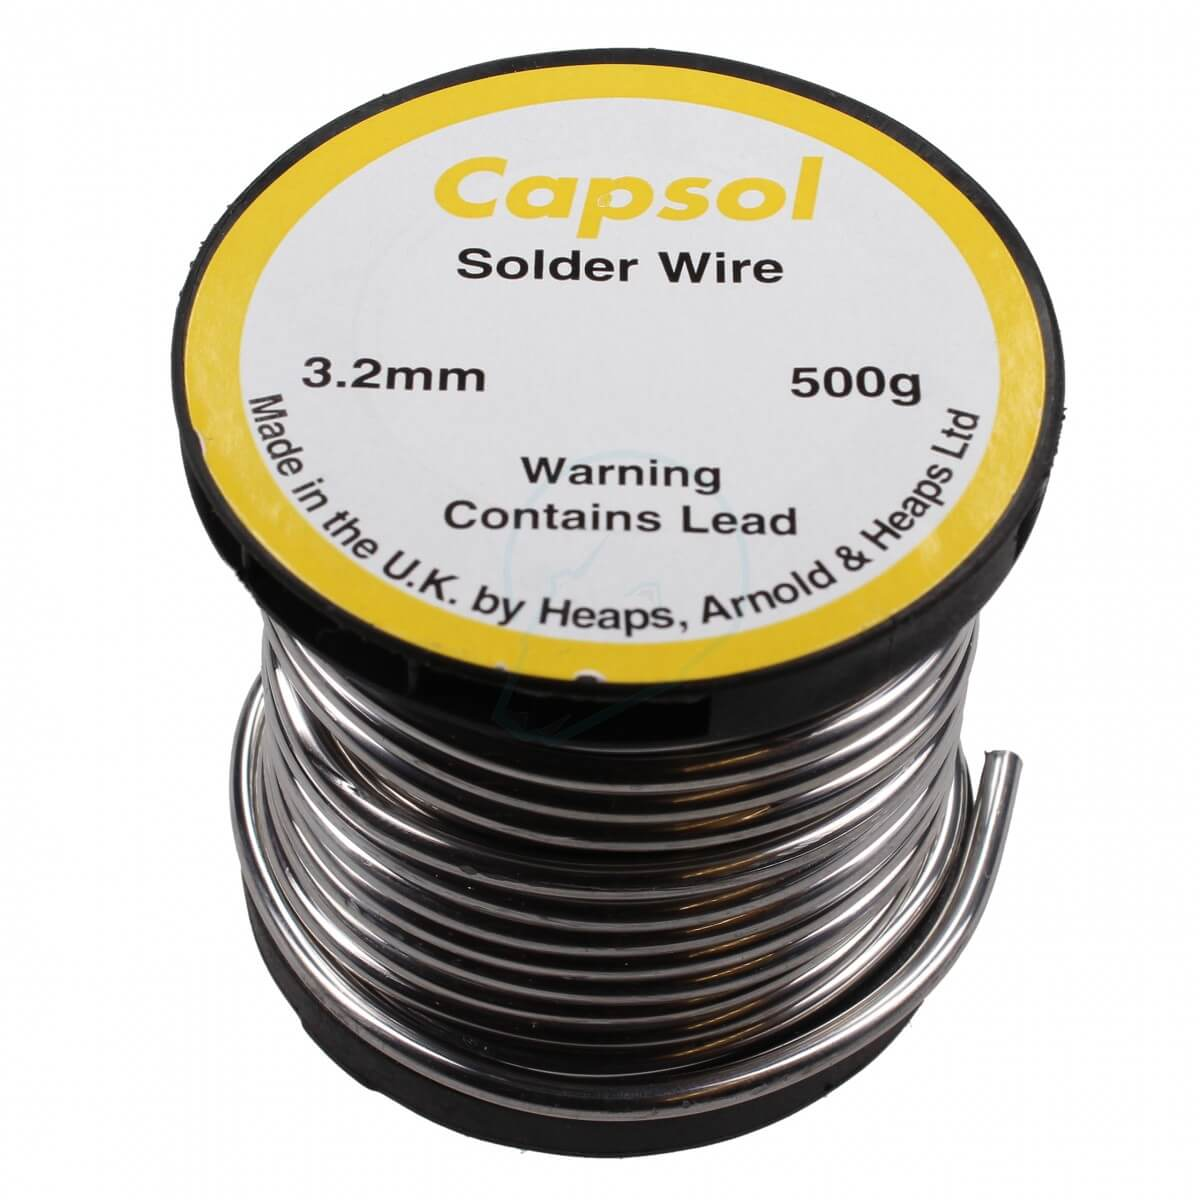 500g Roll of Solder Wire 3.2mm - for Soldering Pipework - Lead Soldering Electrical Wiring on